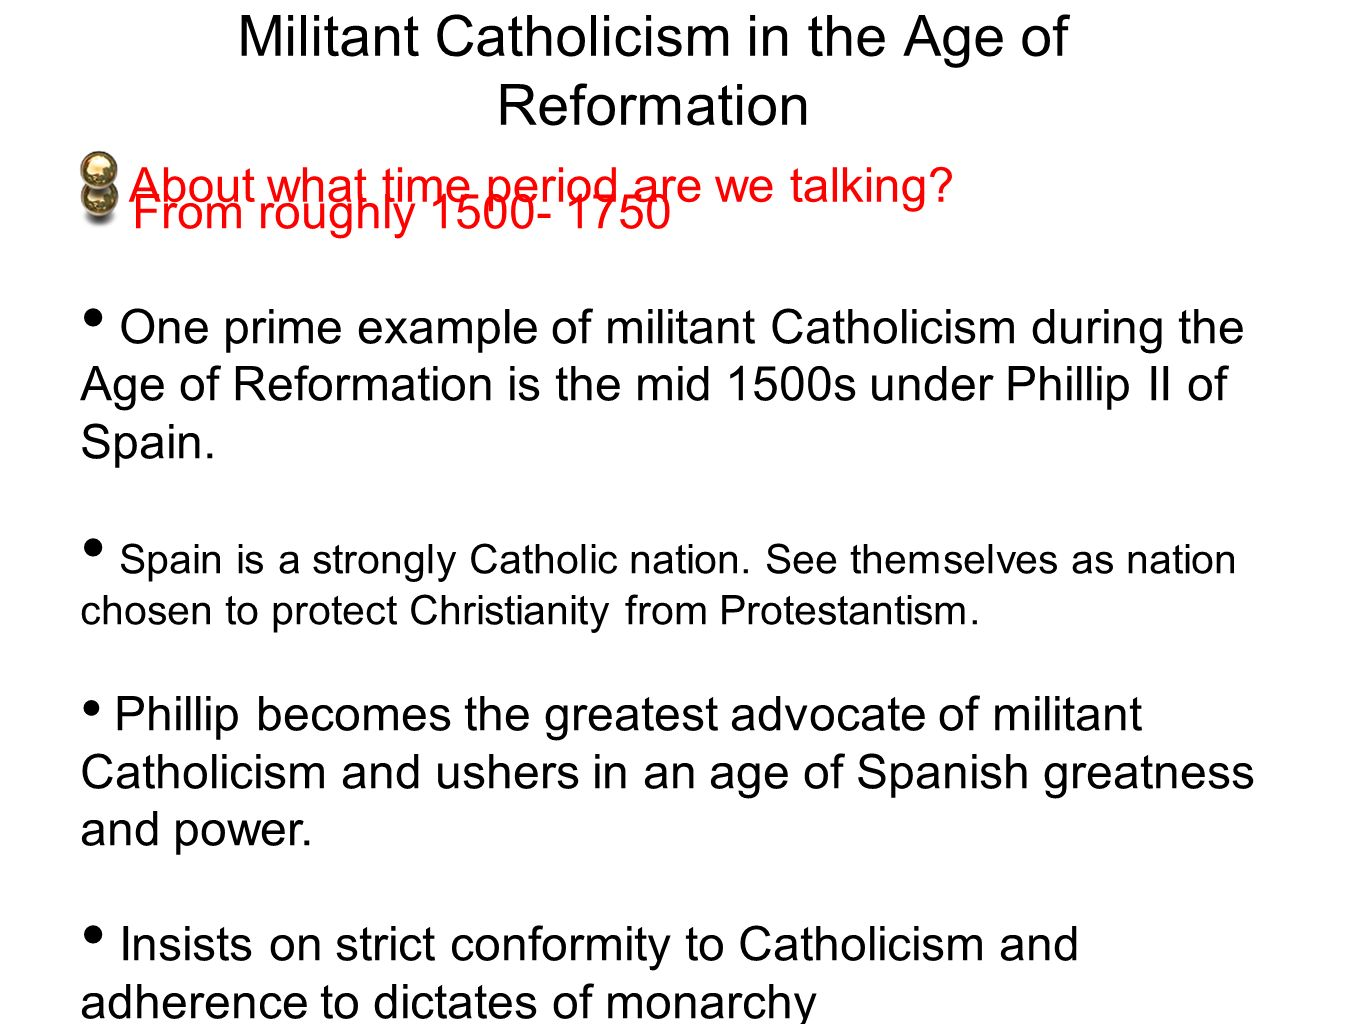 Militant Catholicism in the Age of Reformation From roughly 1500- 1750 One prime example of militant Catholicism during the Age of Reformation is the